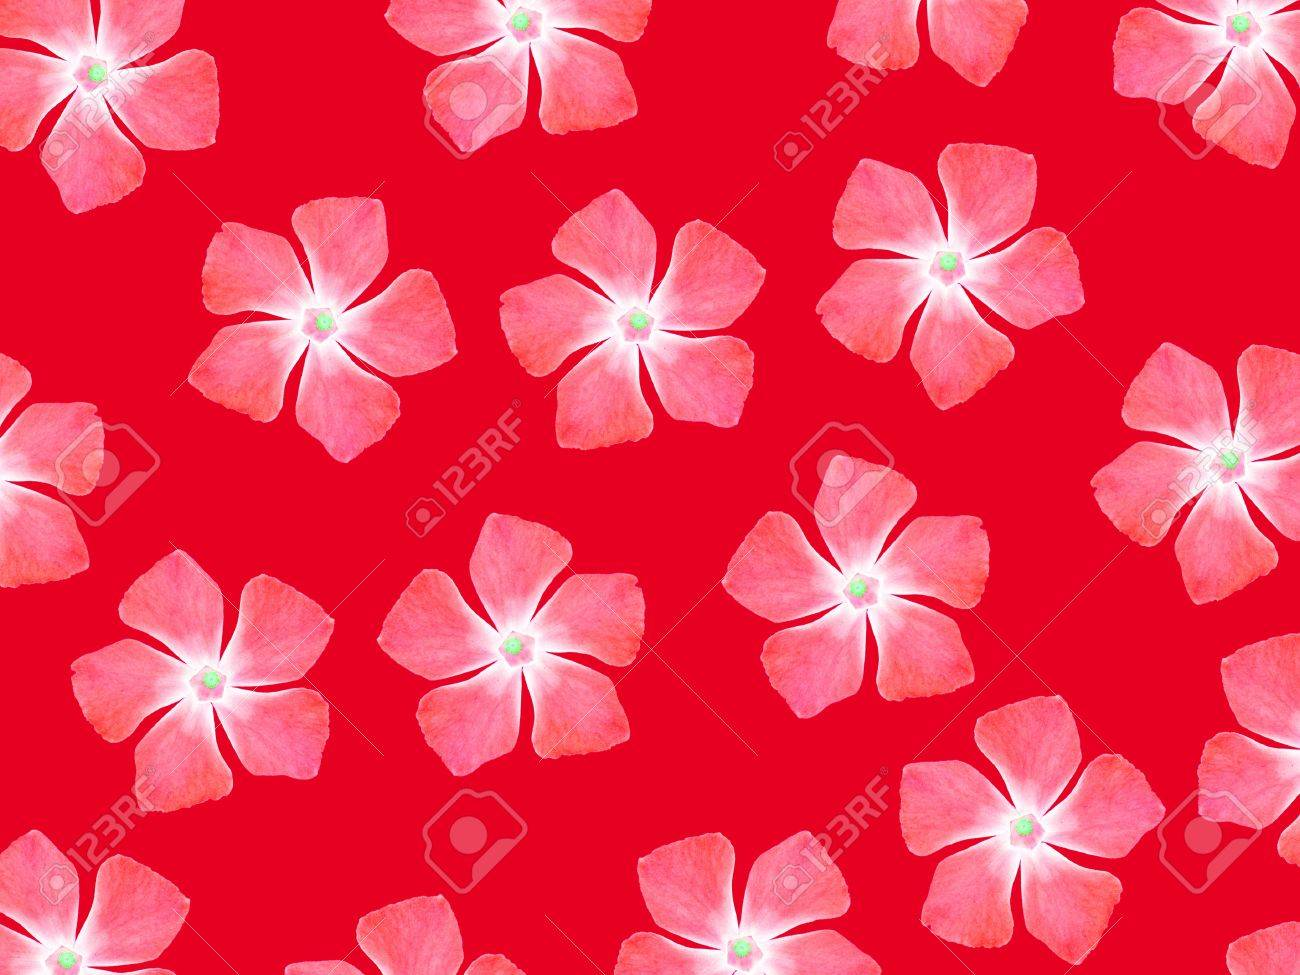 Red Vibrant Background With Real Flowers Pattern Stock Photo